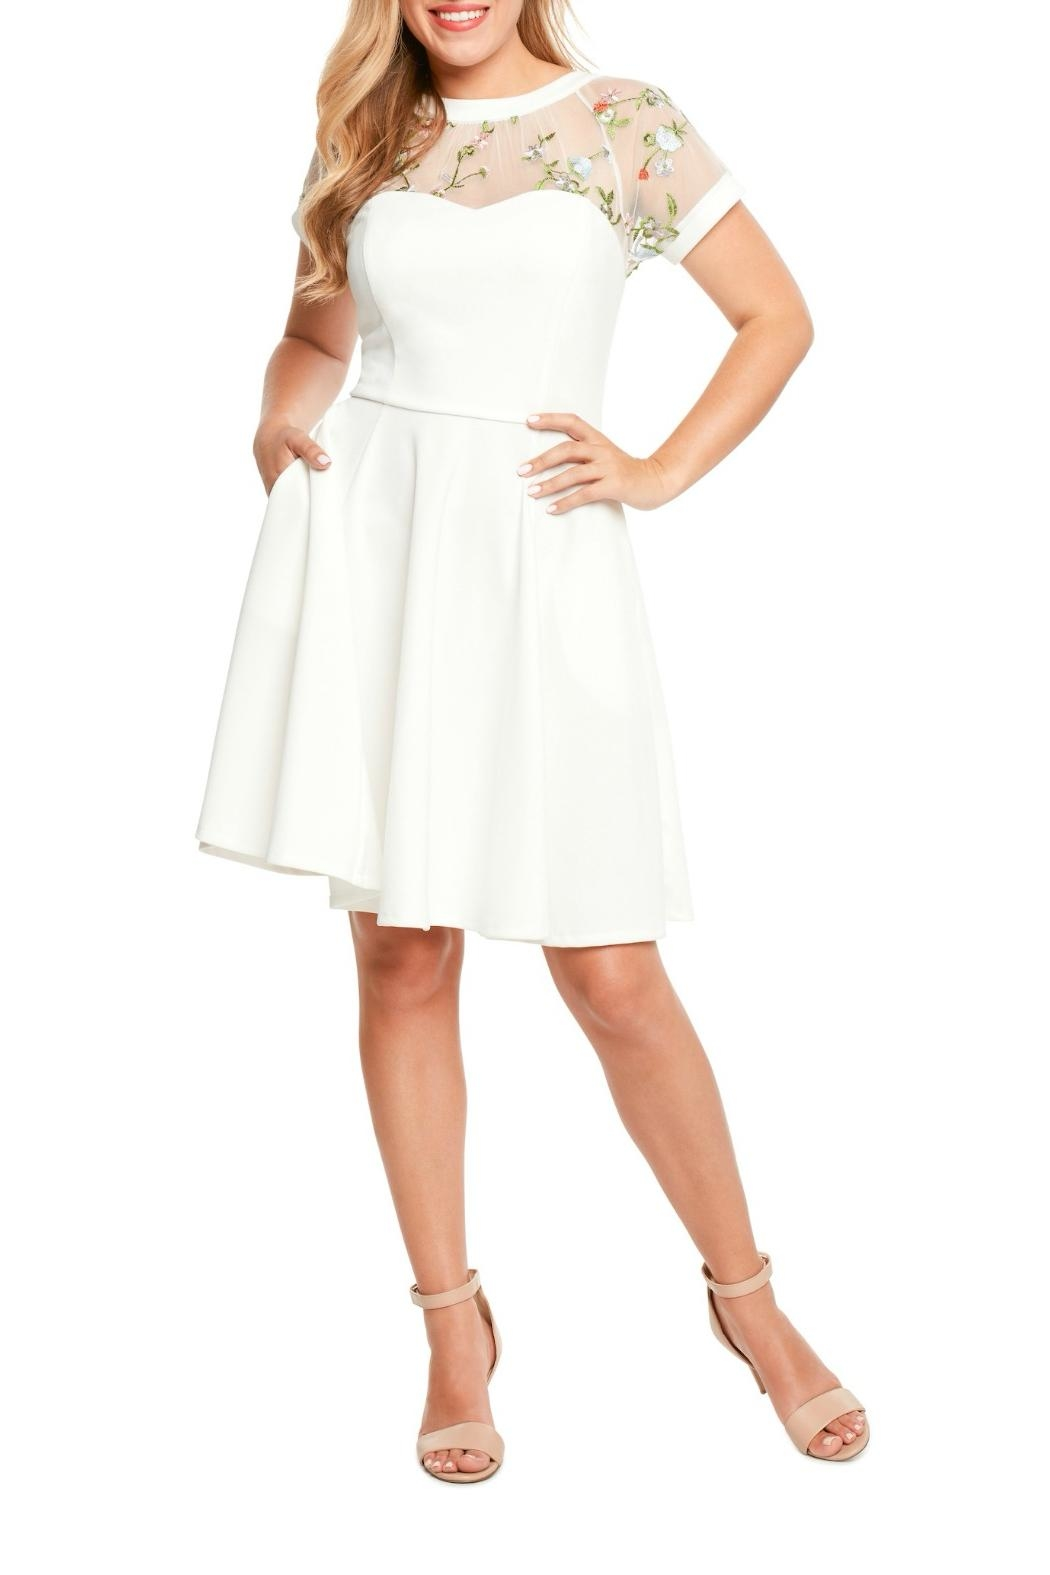 MHGS Embroidered Sweetheart Dress - Main Image